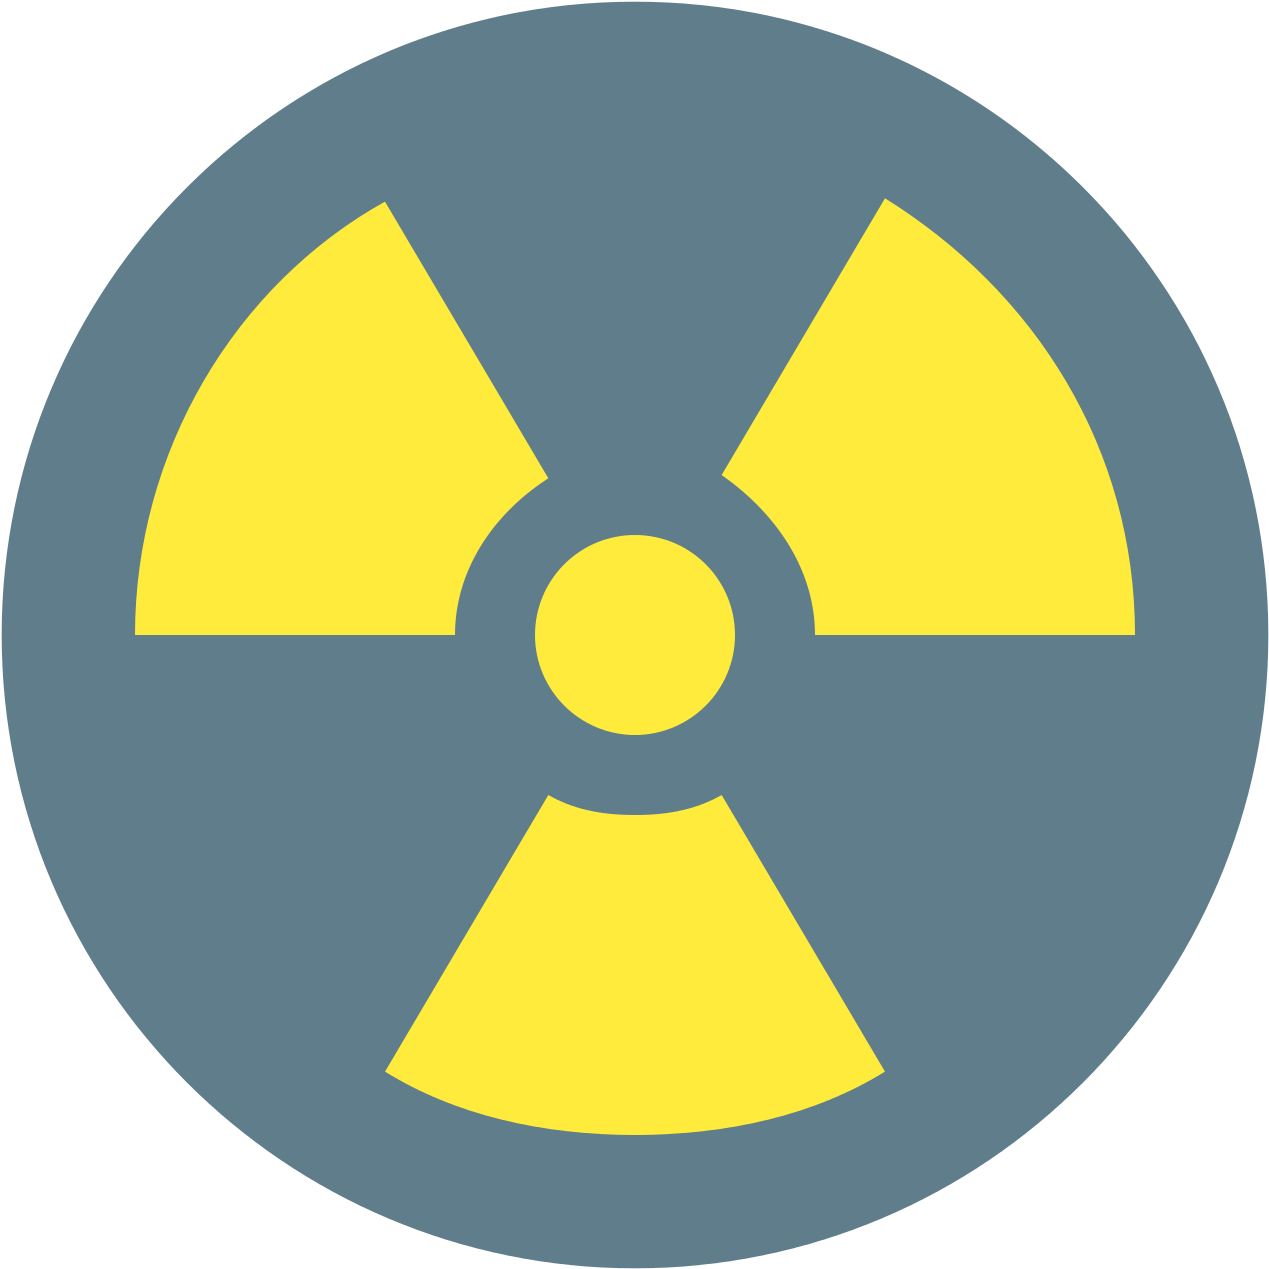 Radio Active Icon - Radioactive Safety Symbol Clipart (1600x1600), Png Download